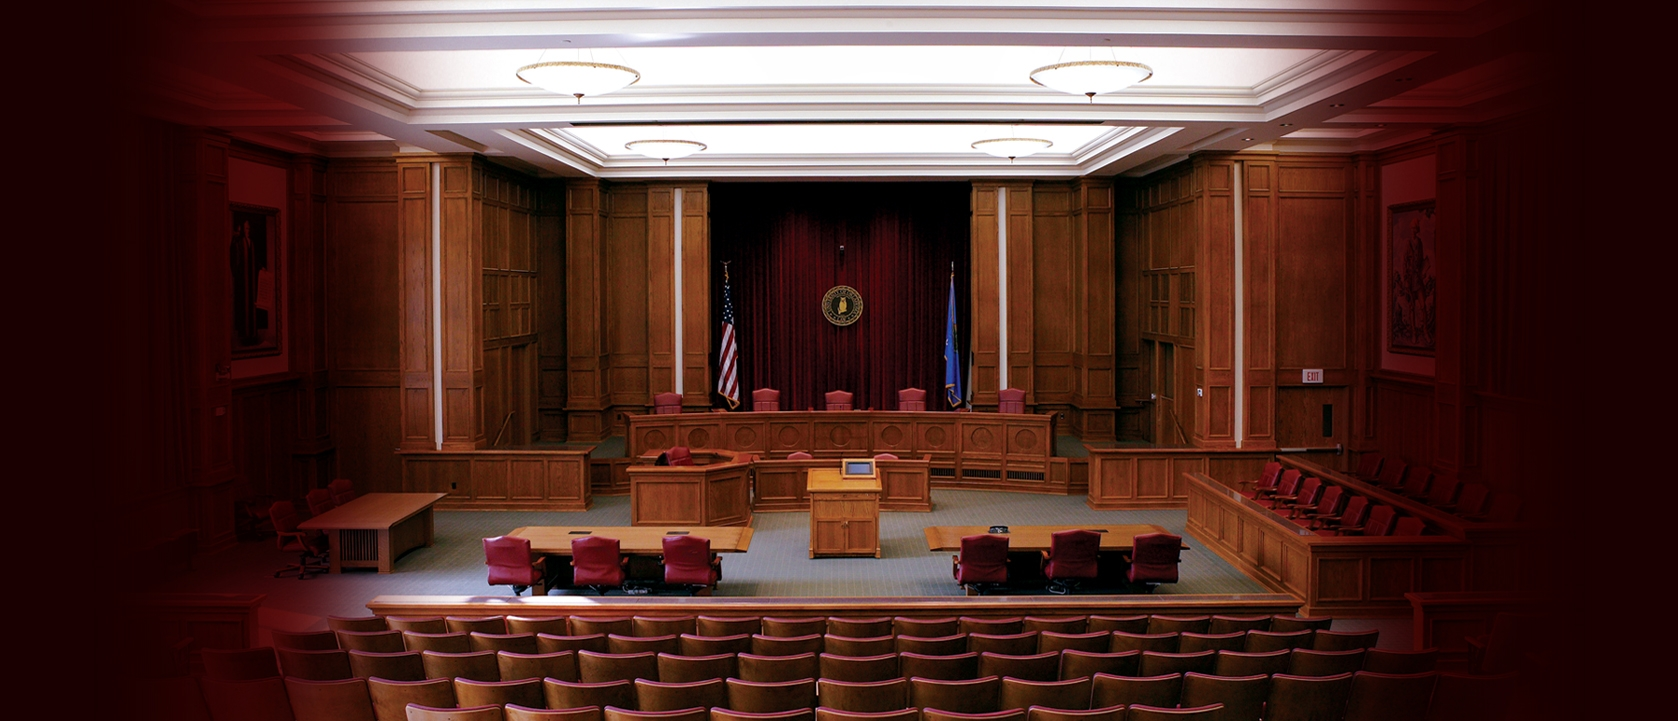 bell_courtroom_13_0